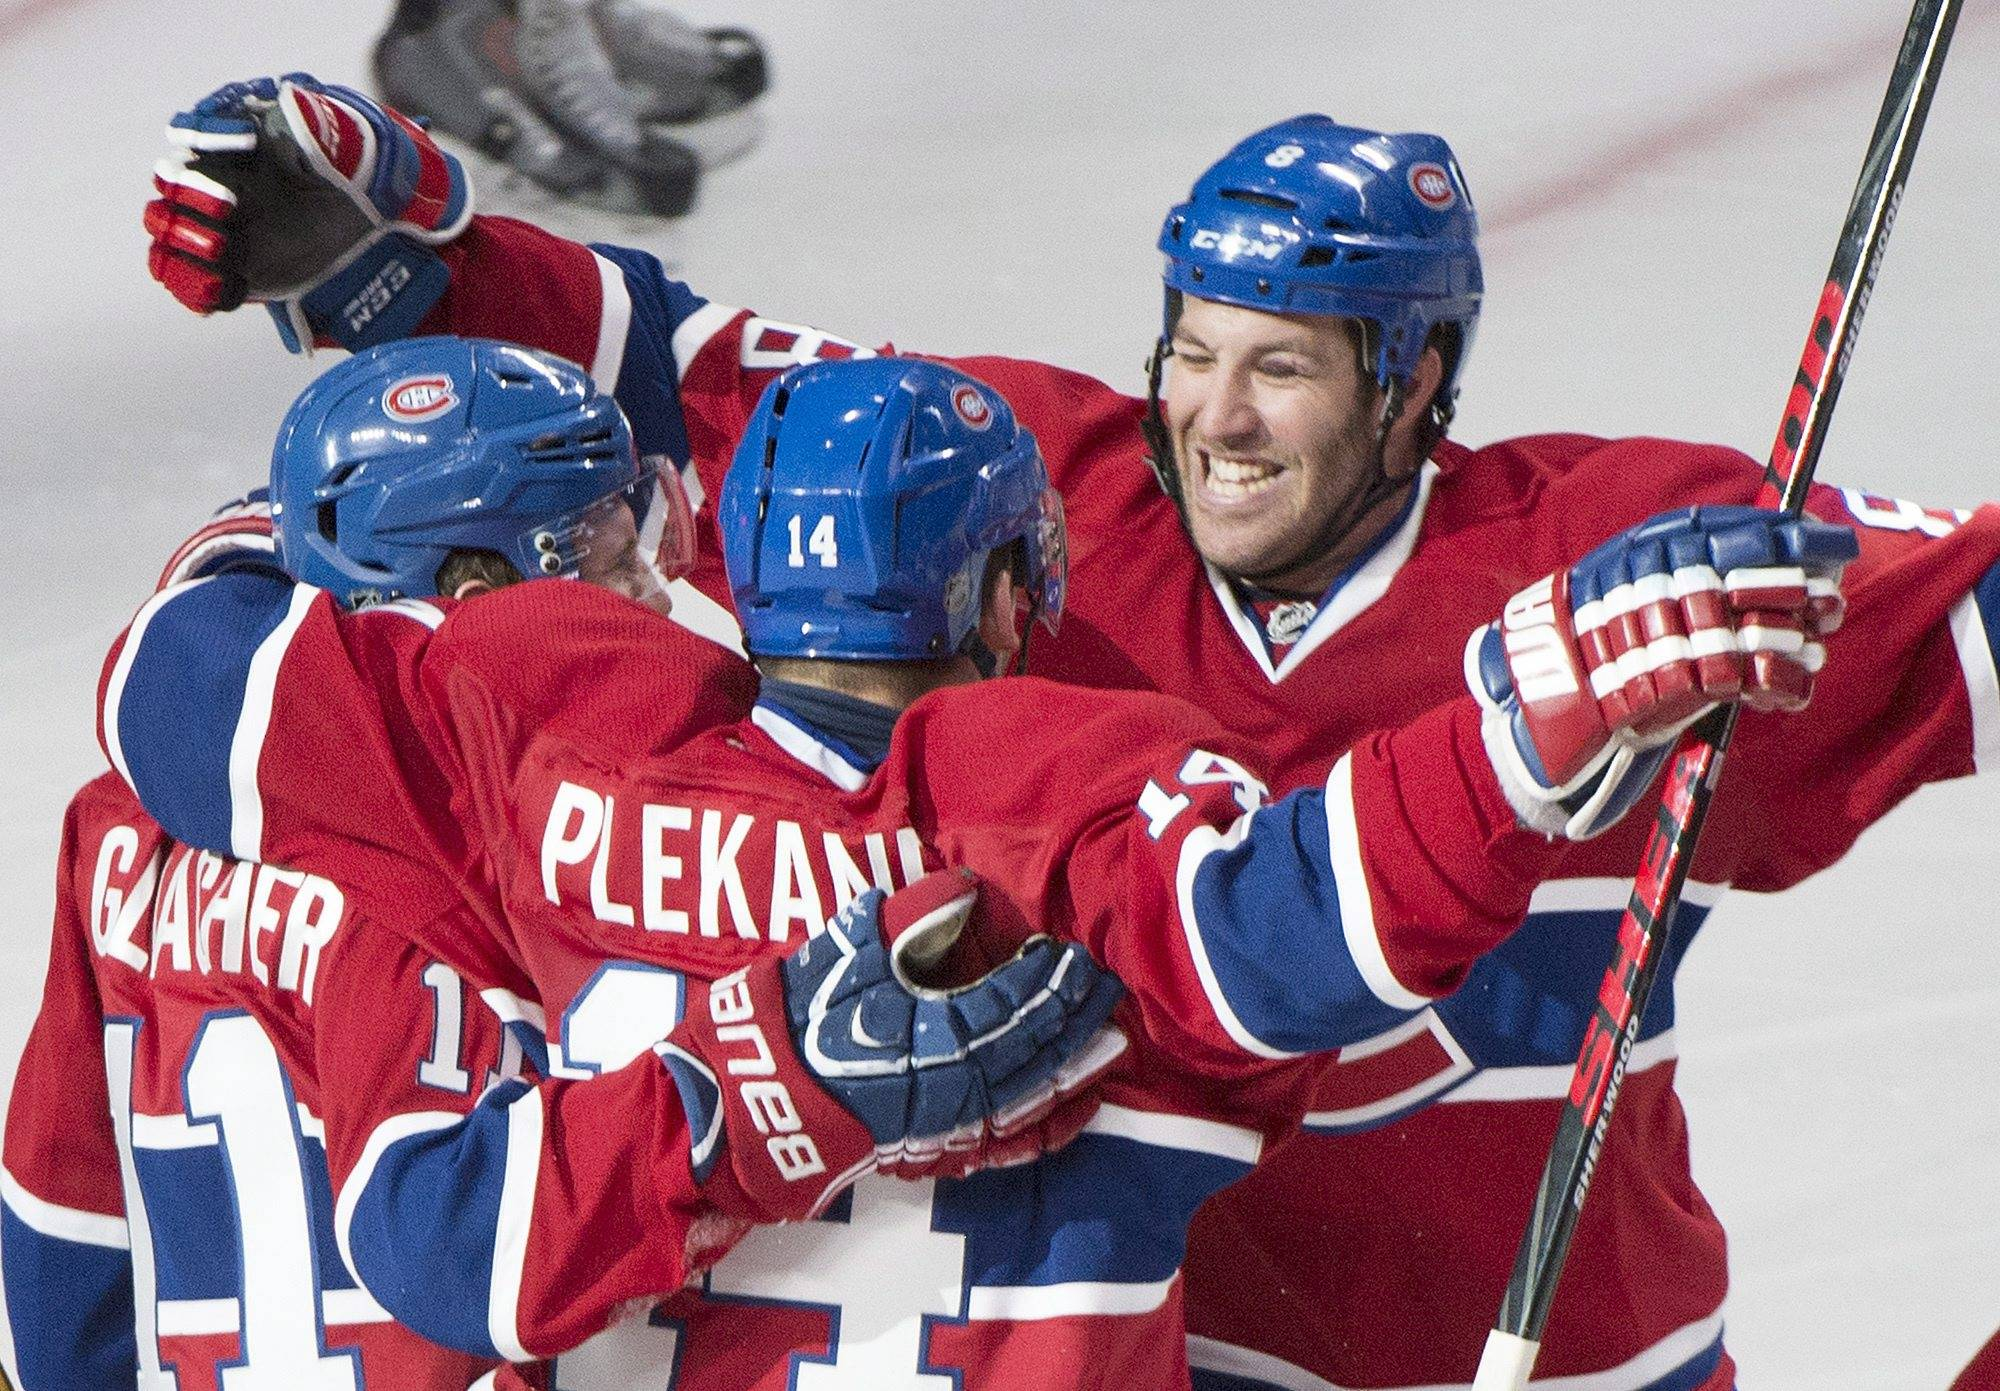 Montreal Canadiens' Tomas Plekanec, centre, celebrates with teammates Brandon Prust, right, and Brendan Gallagher after scoring against the Tampa Bay Lightning during third period NHL Stanley Cup hockey playoff action in Montreal, Sunday, April 20, 2014.